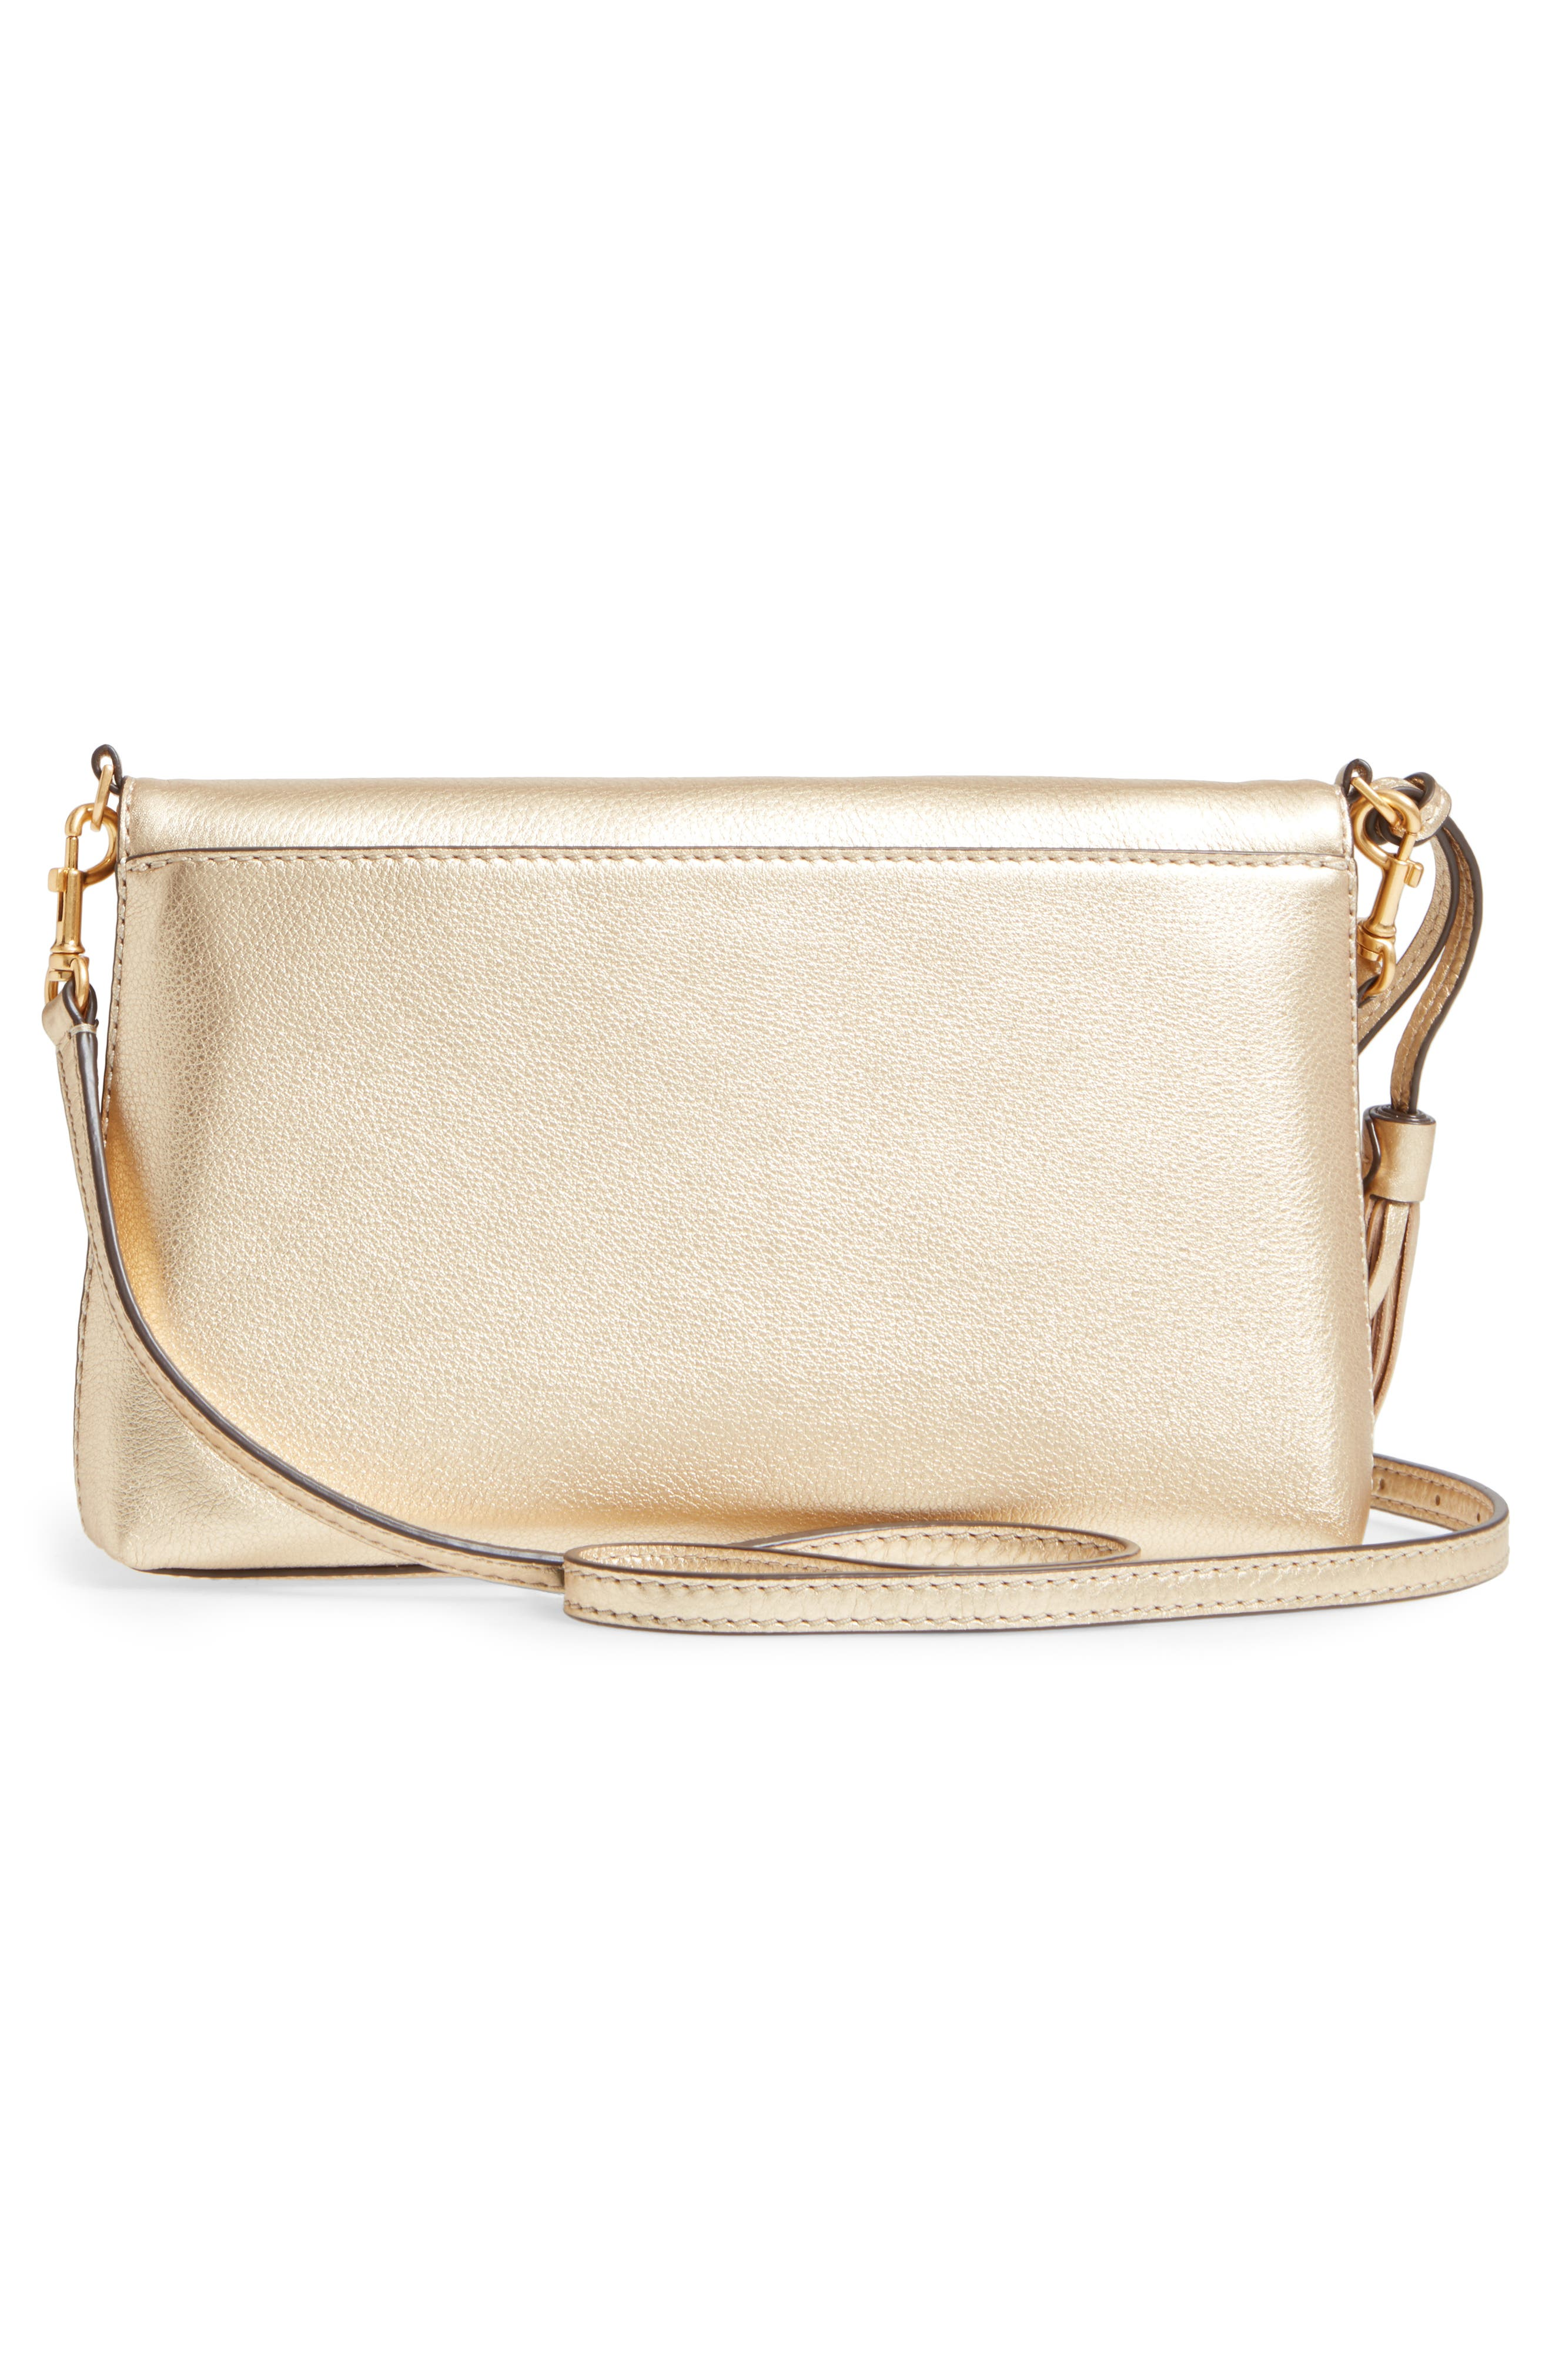 McGraw Metallic Leather Crossbody Bag,                             Alternate thumbnail 3, color,                             Gold